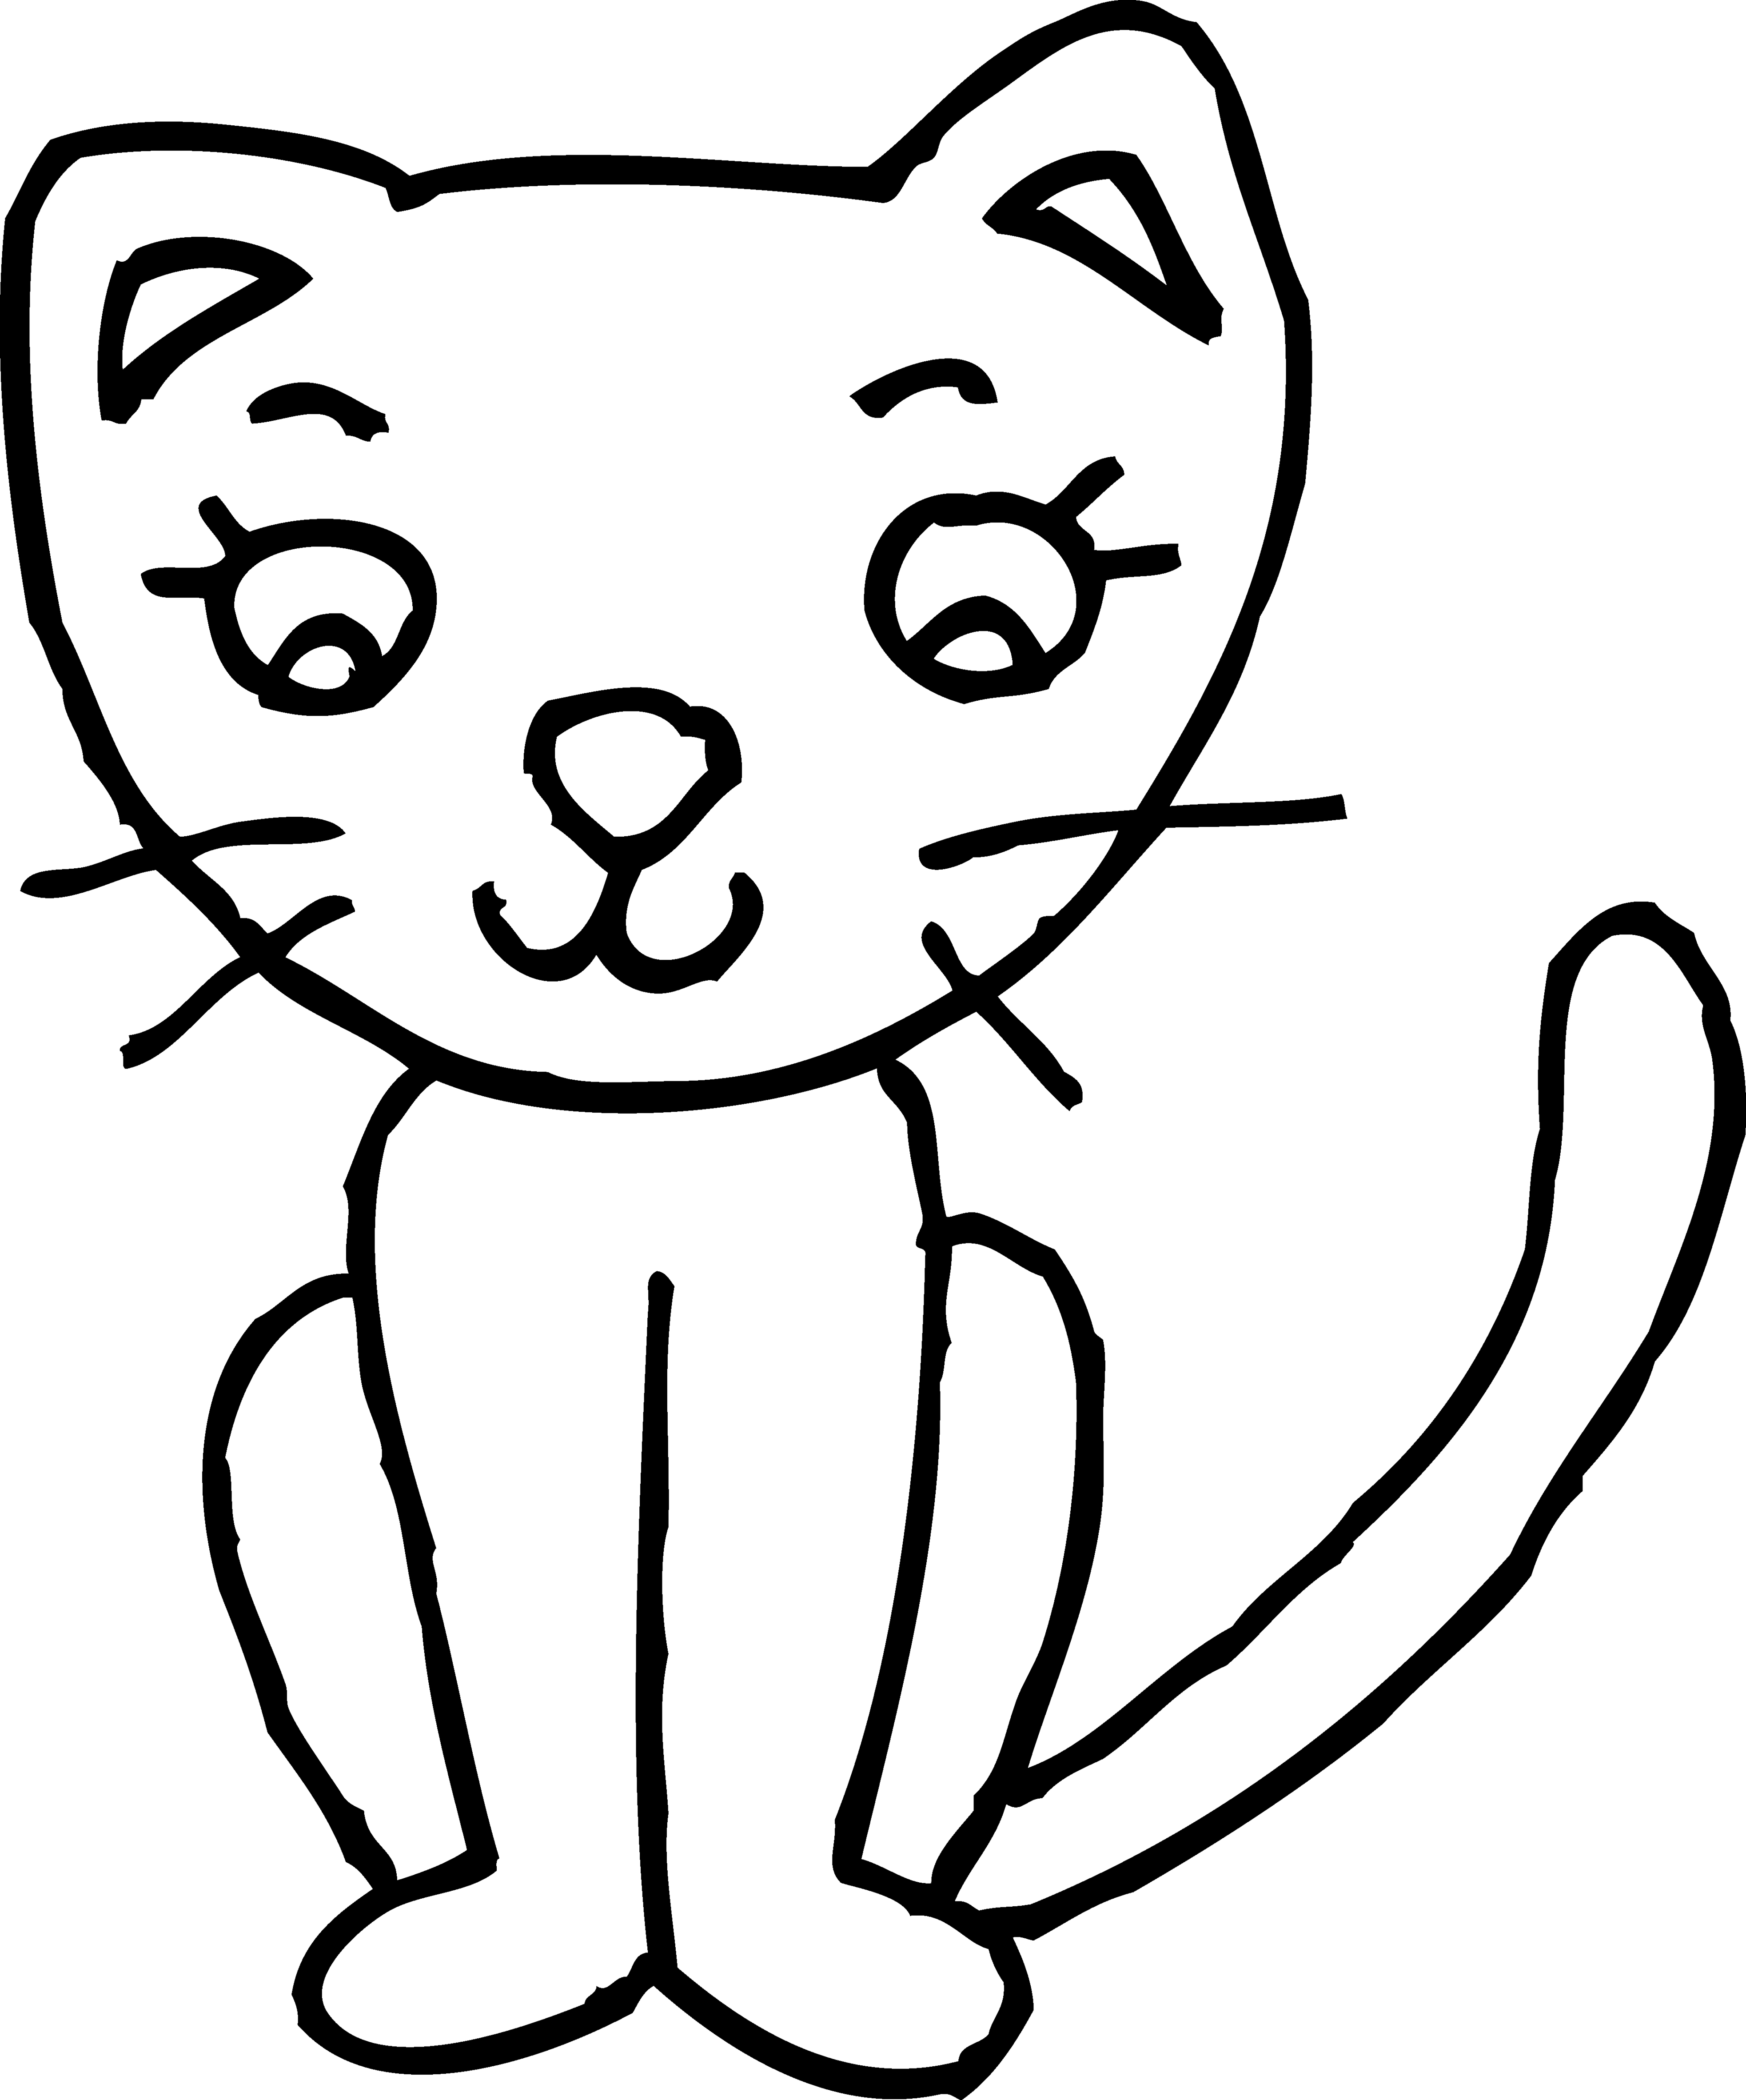 Halloween dancing clipart picture transparent download Halloween Cat Black And White Clipart picture transparent download